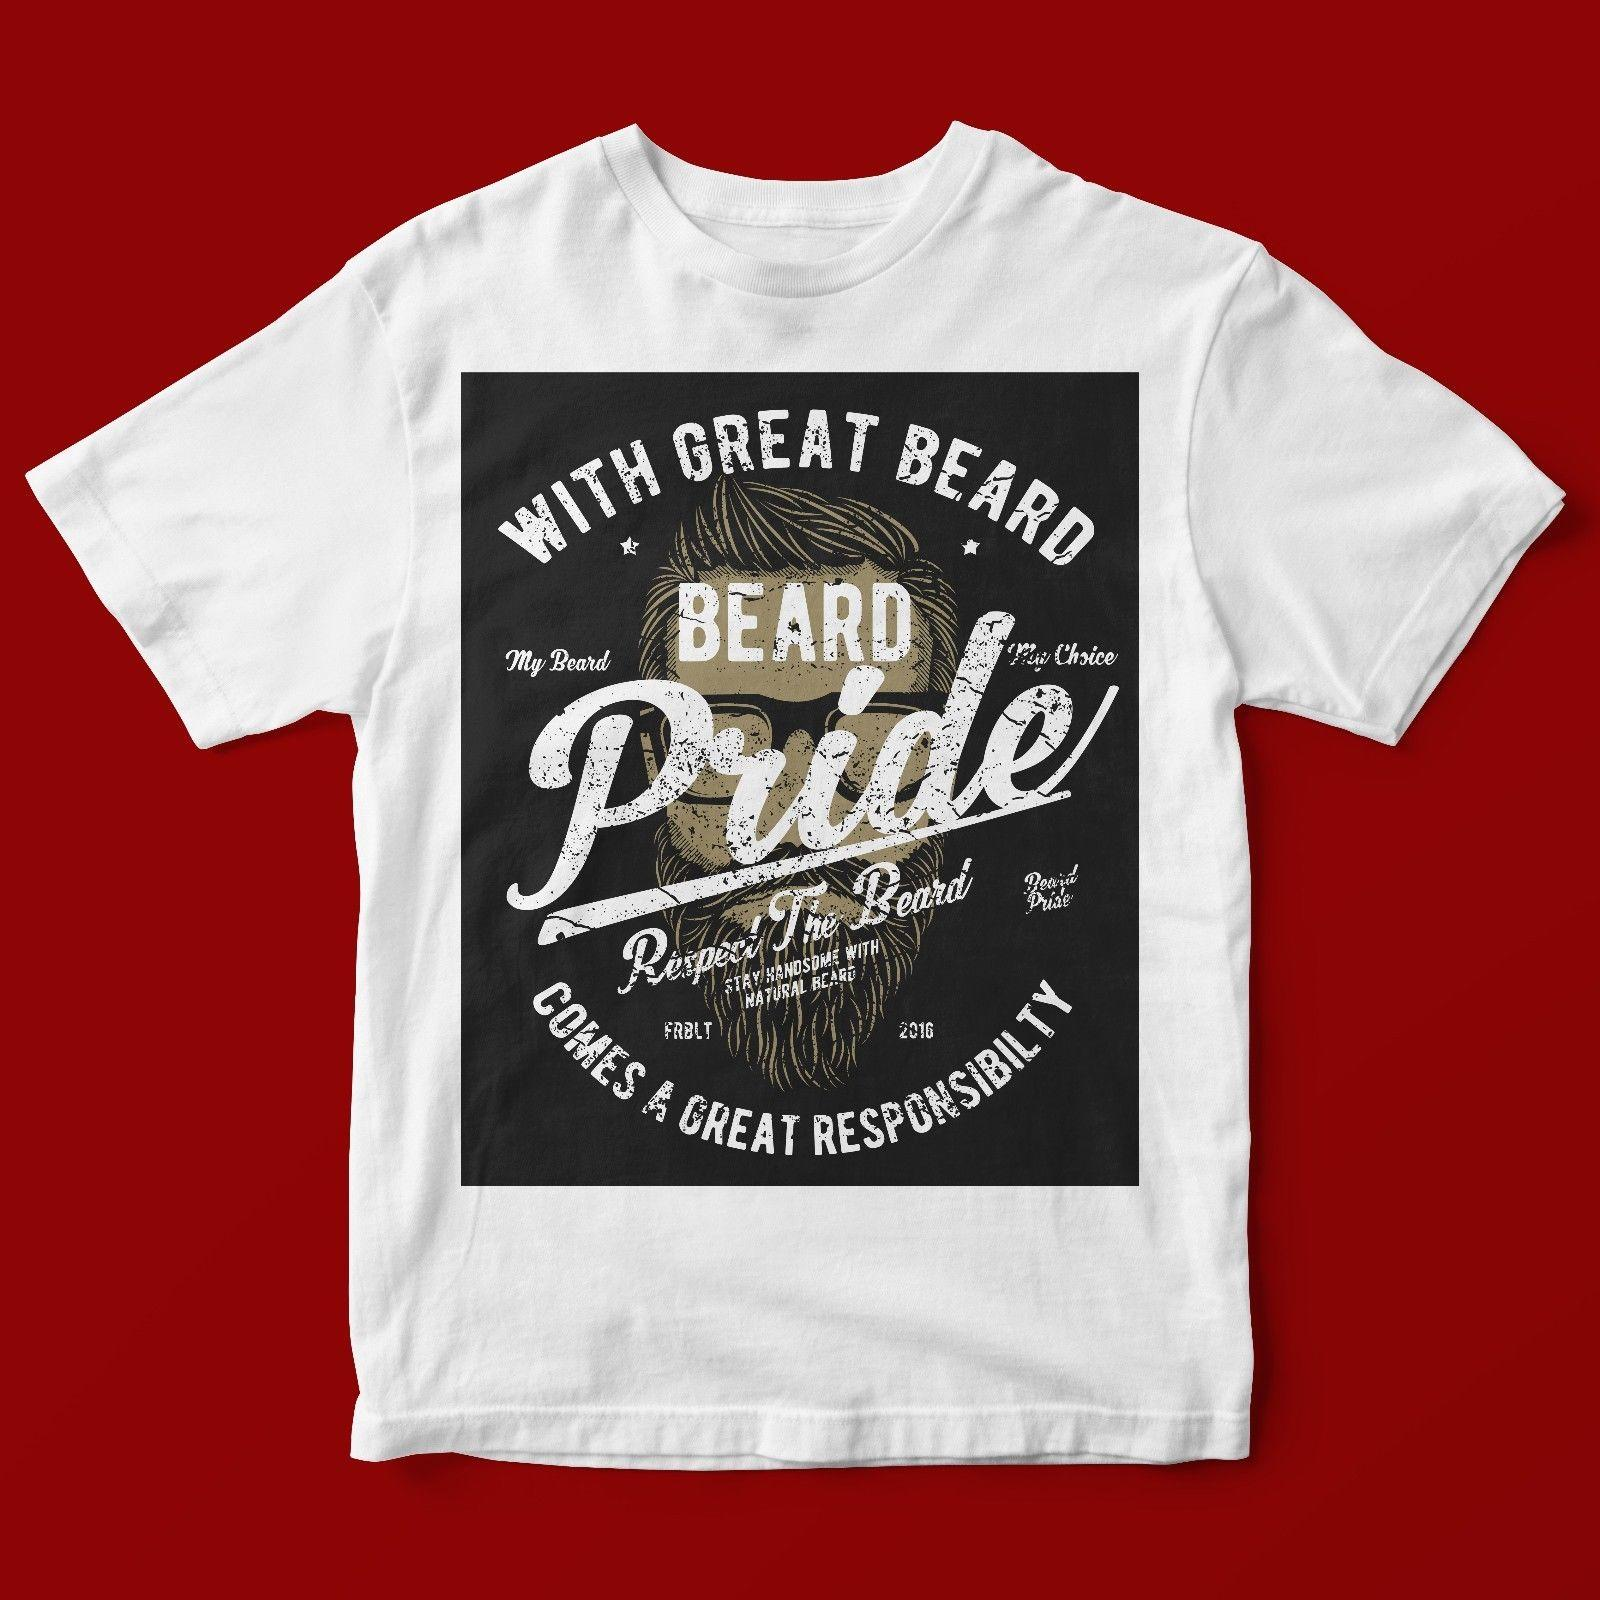 WITH GREAT BEARD T-SHIRT UNISEX 830 Print Short Sleeve T Shirt Free Shipping Short-Sleeved Print Letters